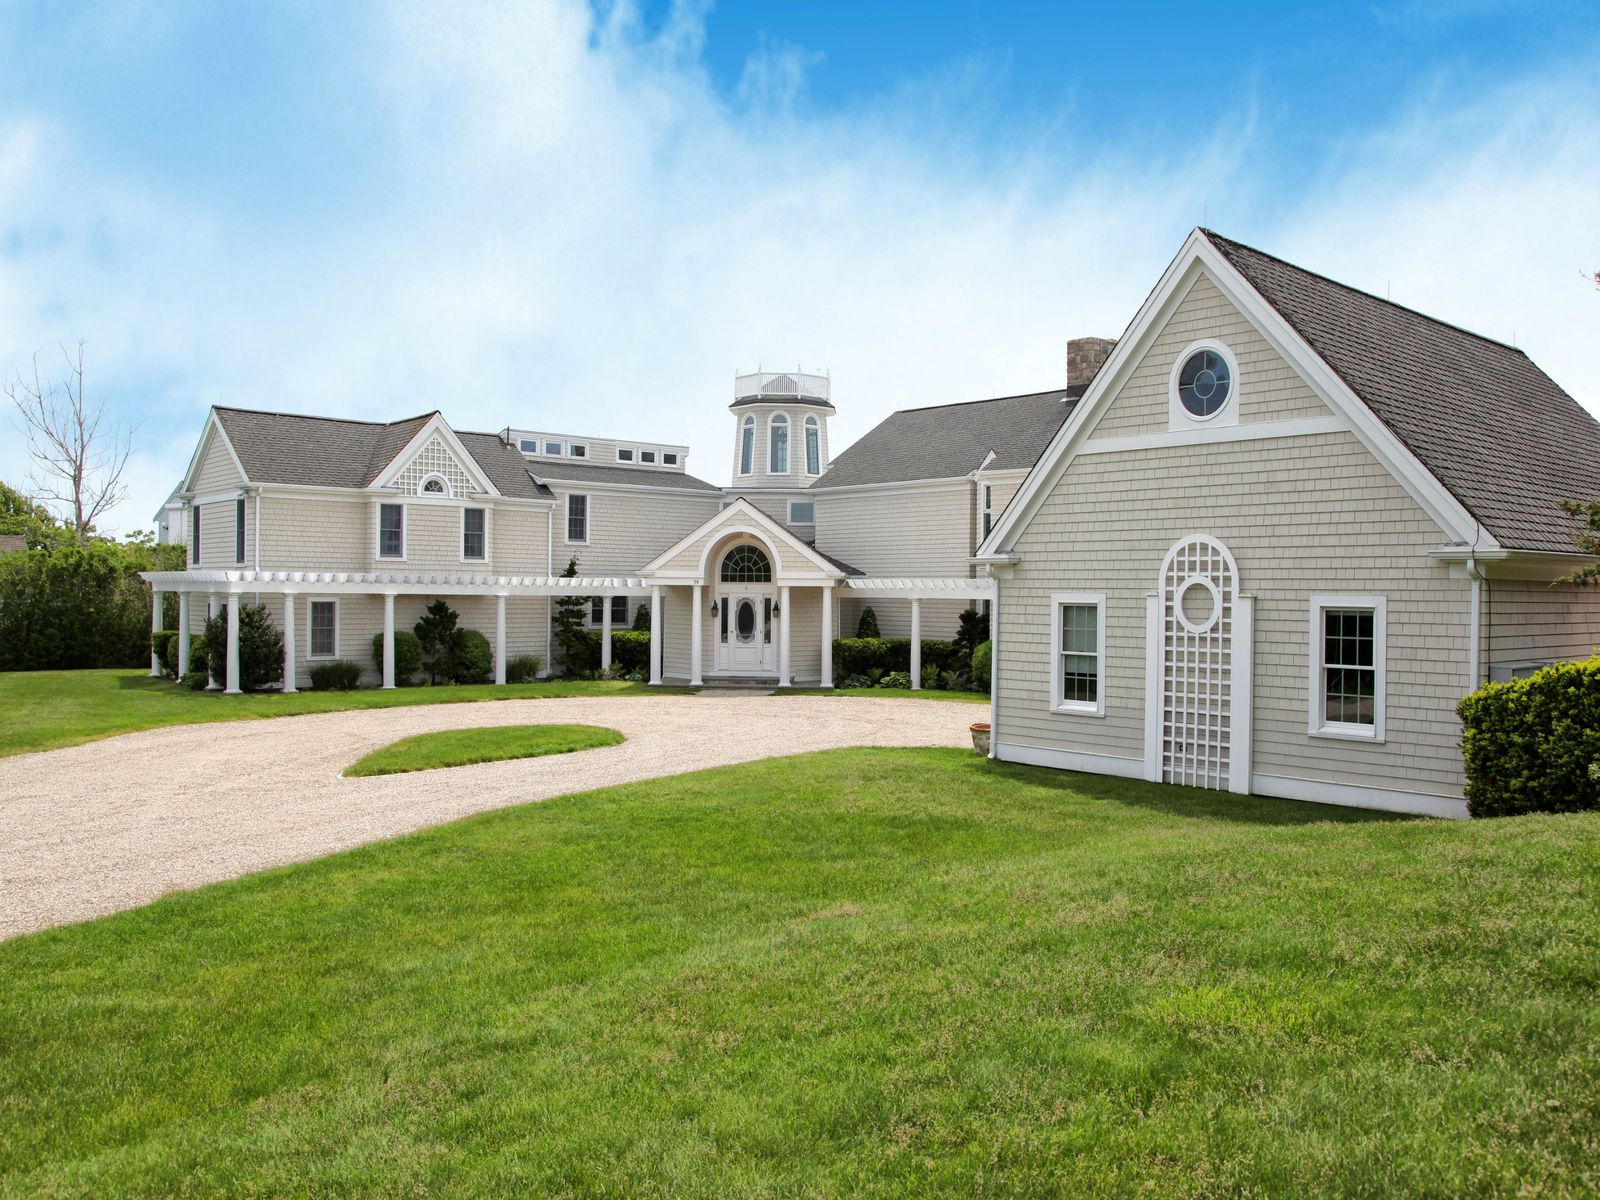 Island Avenue Hyannis Port, Hyannis Port MA Single Family Home - Cape Cod Real Estate